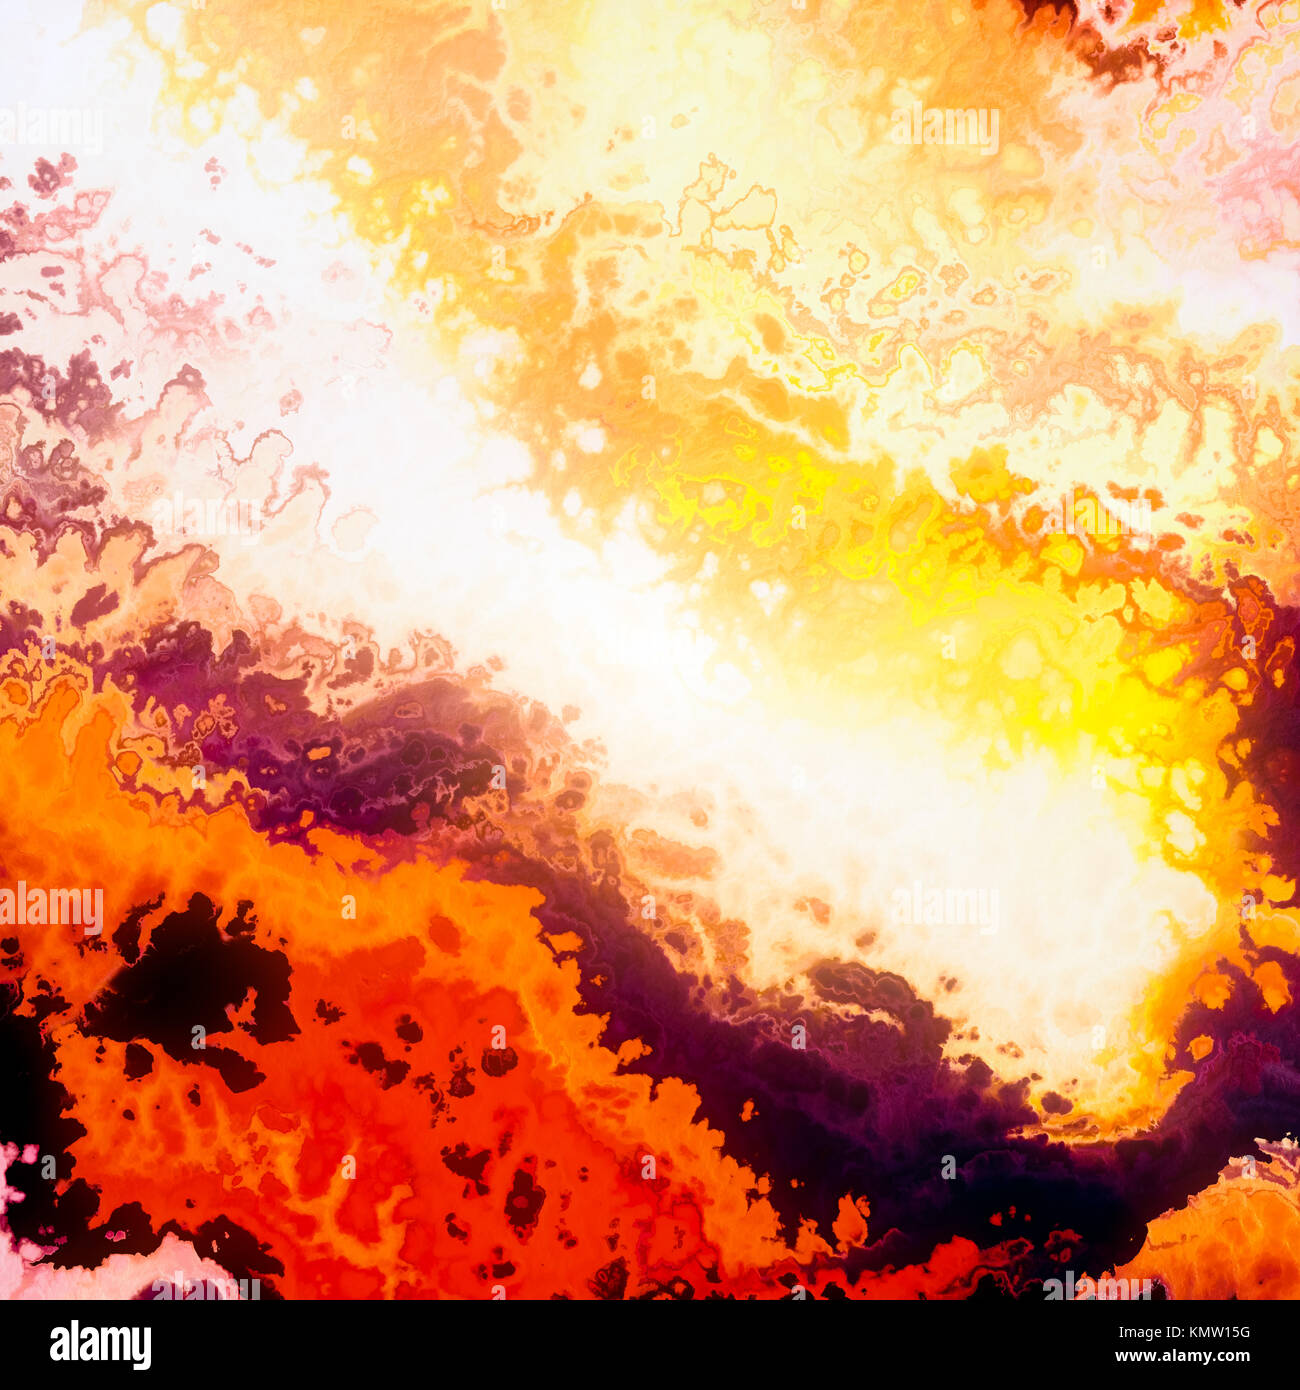 Burning clouds, red flames, abstract illustration Stock Photo